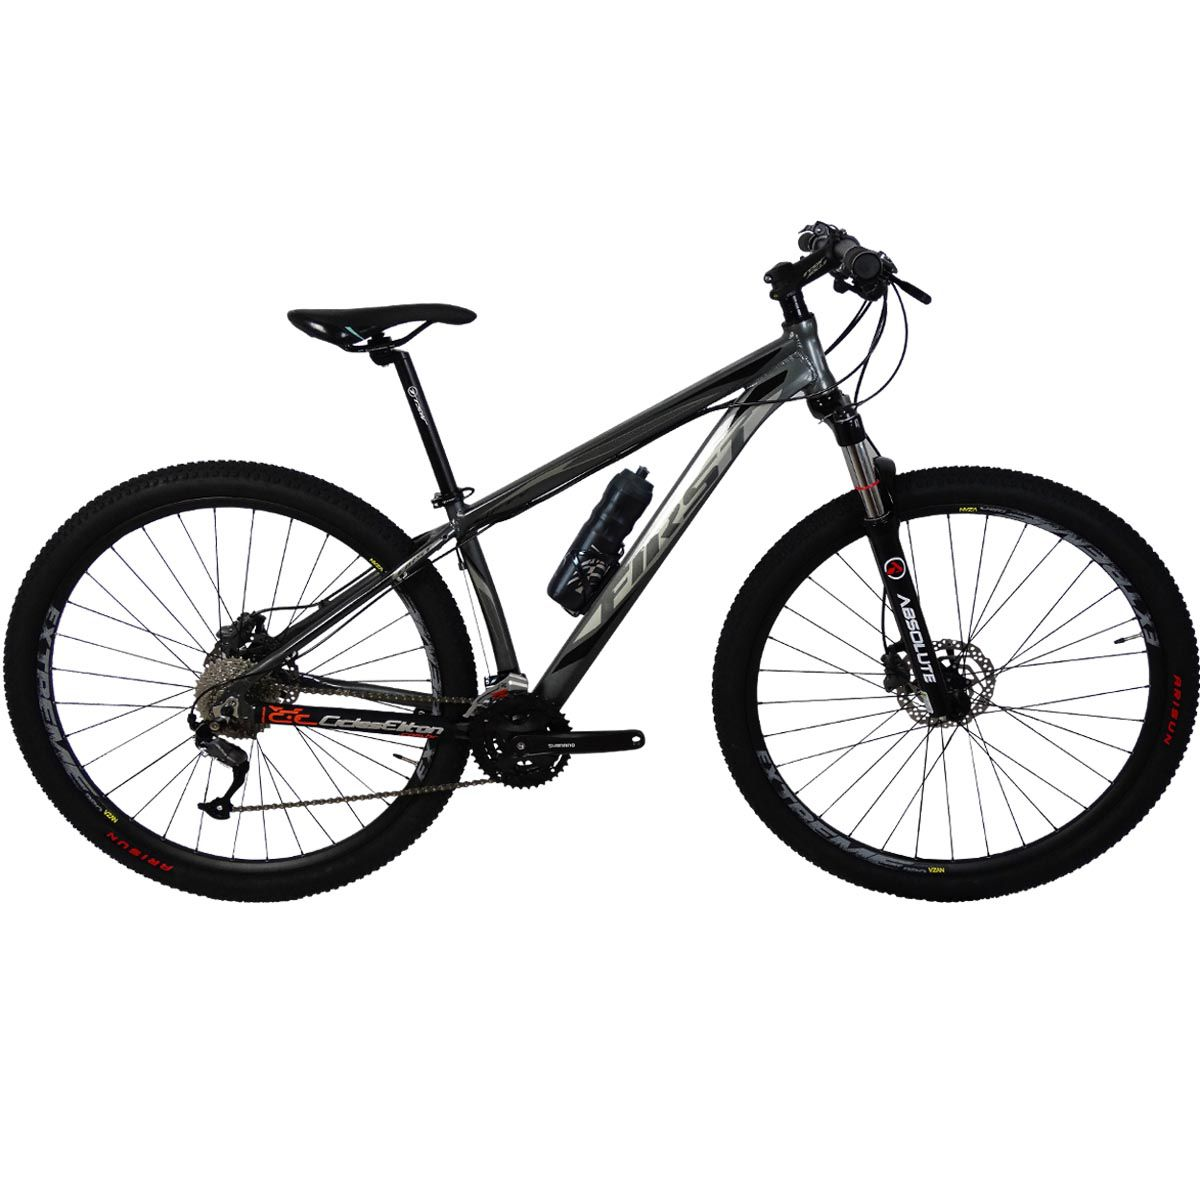 BICICLETA 29 FIRST LIFTY 27V SHIMANO ALTUS ACERA TRAVA GUIDÃO